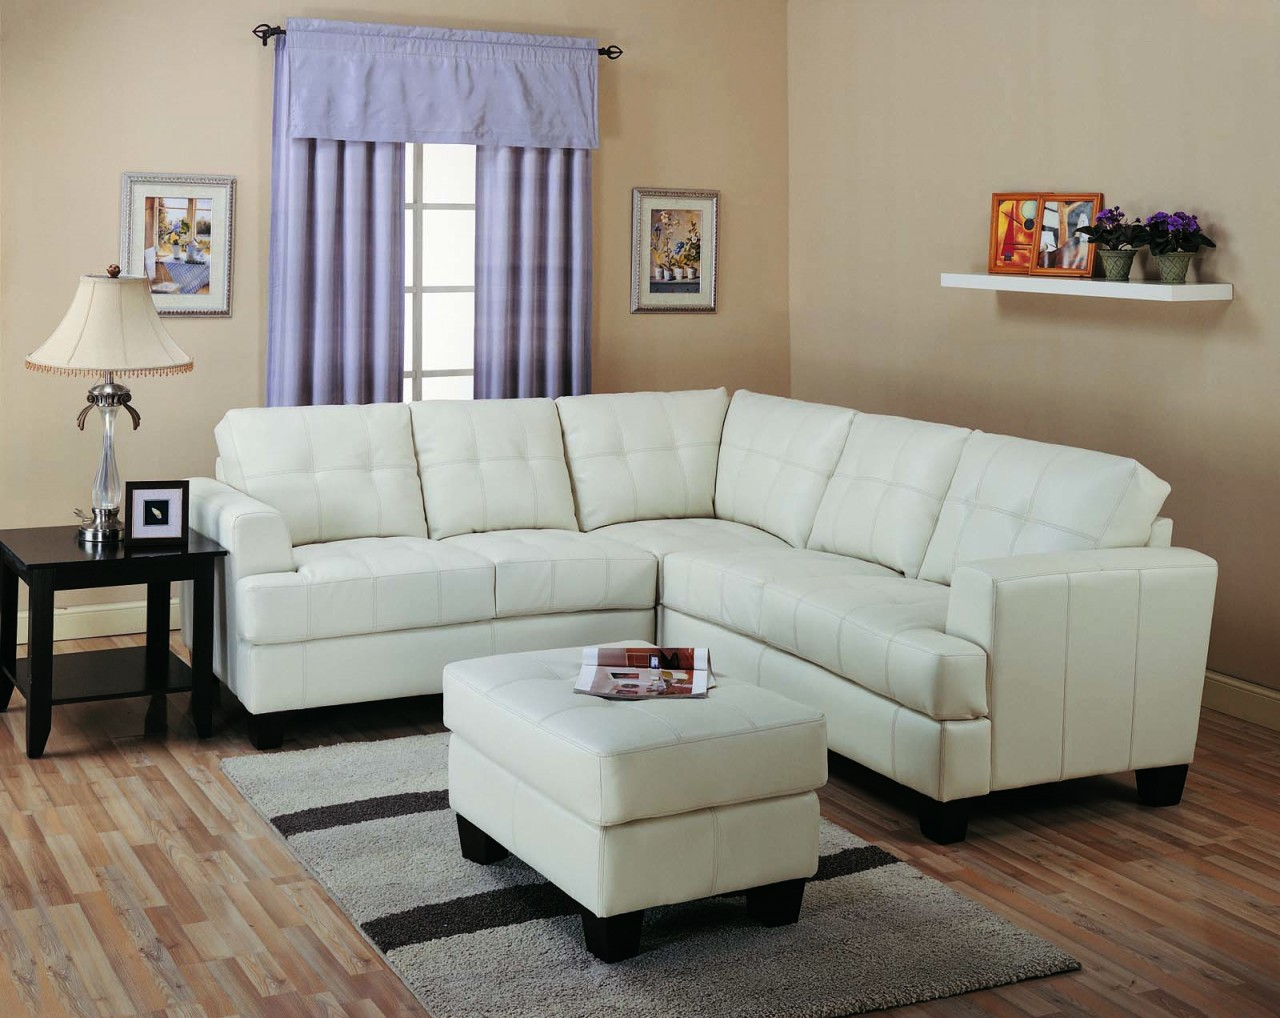 Types of Best Small Sectional Couches for Small Living Rooms | HomesFeed